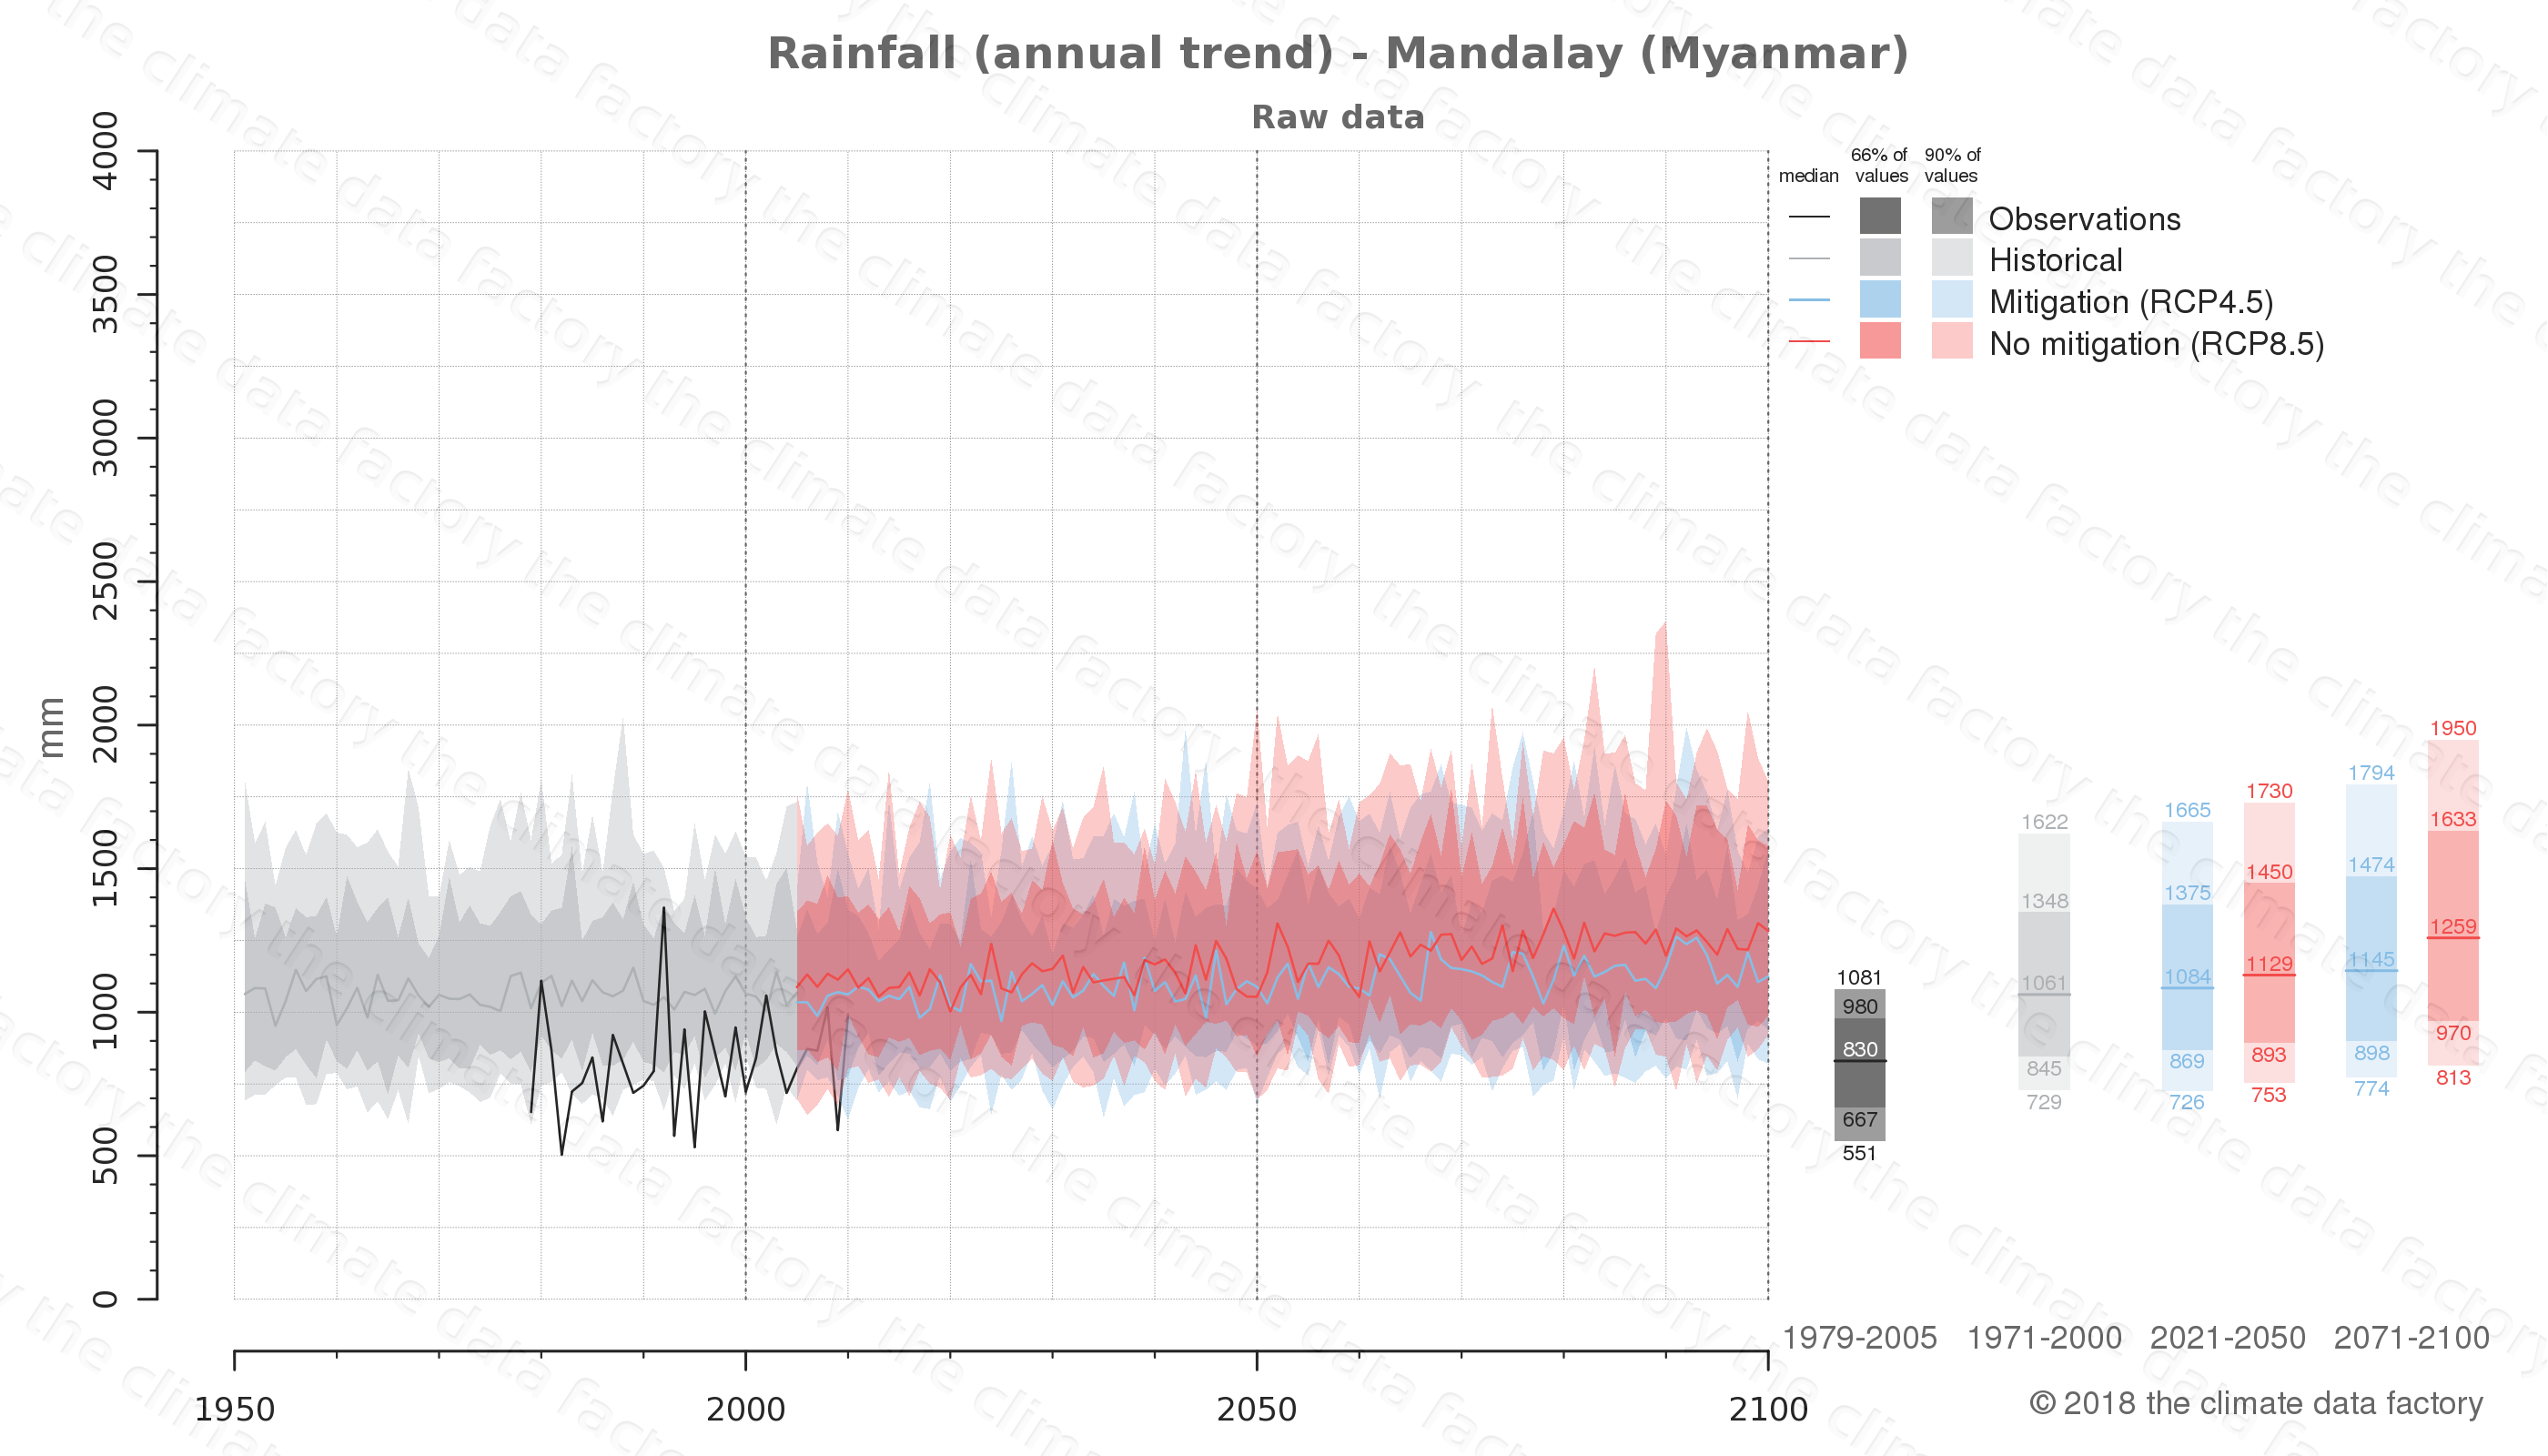 climate change data policy adaptation climate graph city data rainfall mandalay myanmar